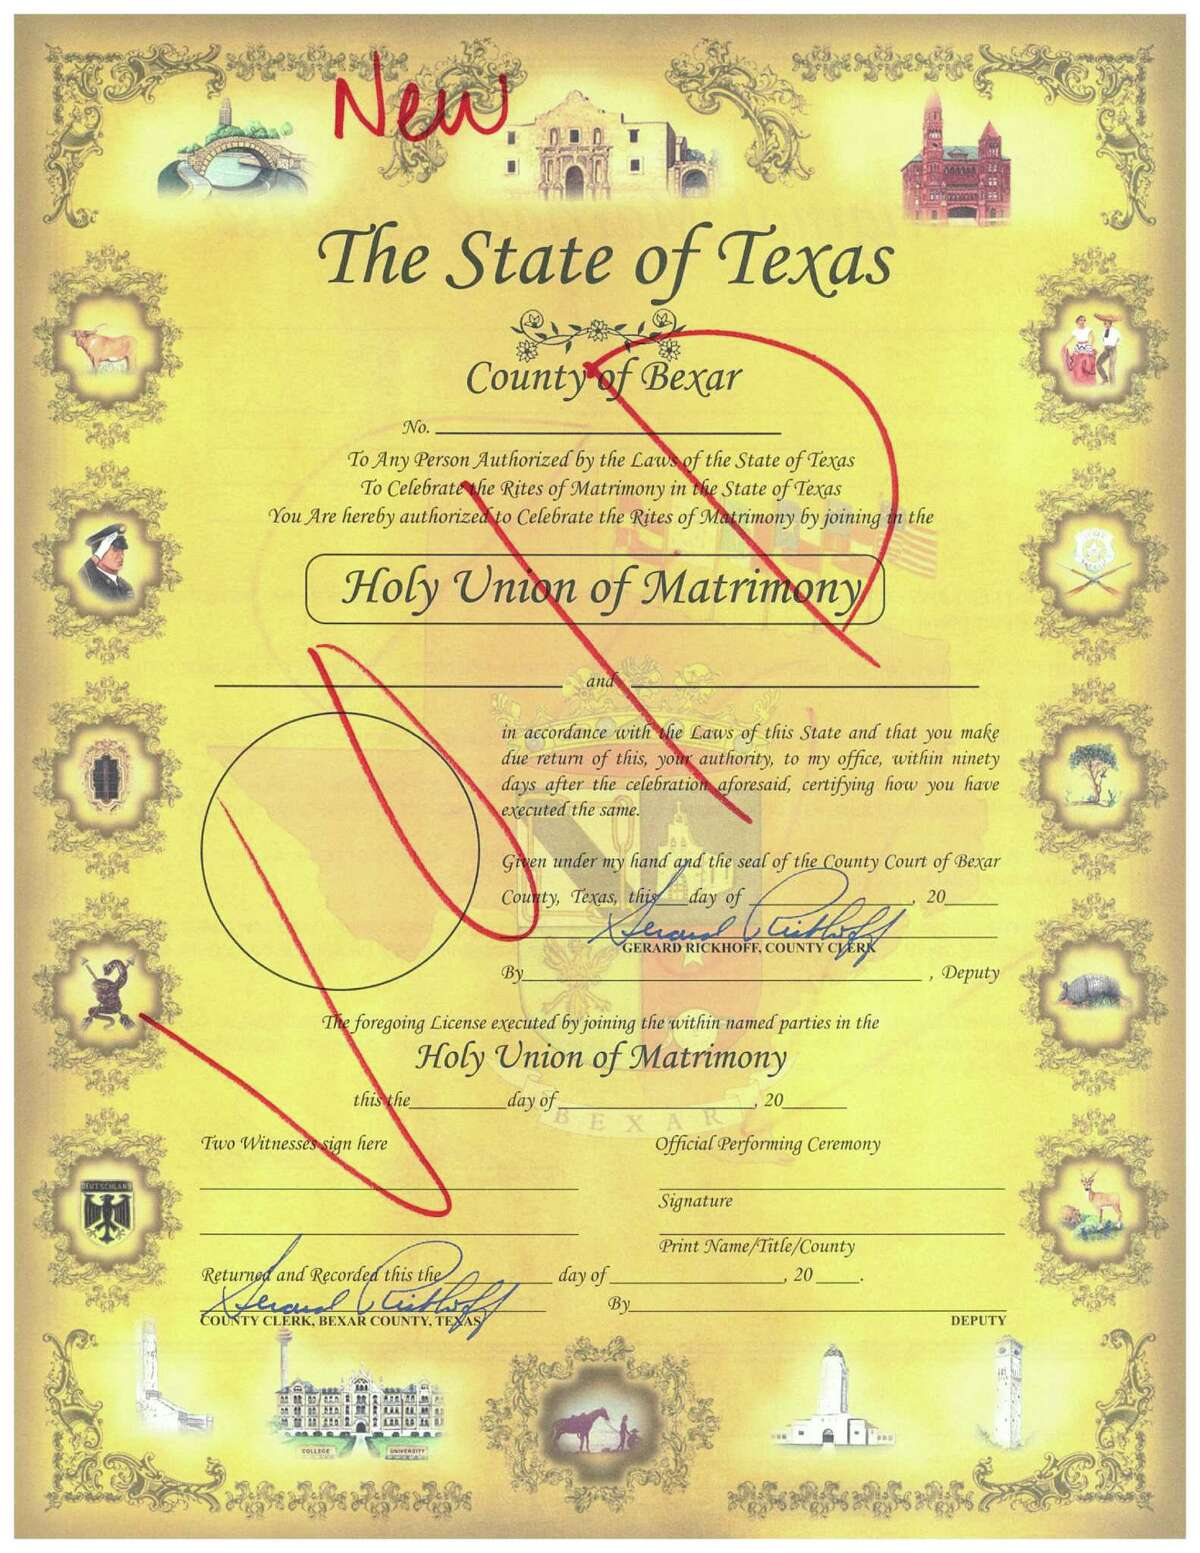 Pictured, a revised marriage license to be issued by the Bexar County Clerk's Office. The new license removes gender references in anticipation of a ruling from the U.S. Supreme Court legalizing same-sex marriage in all 50 states.